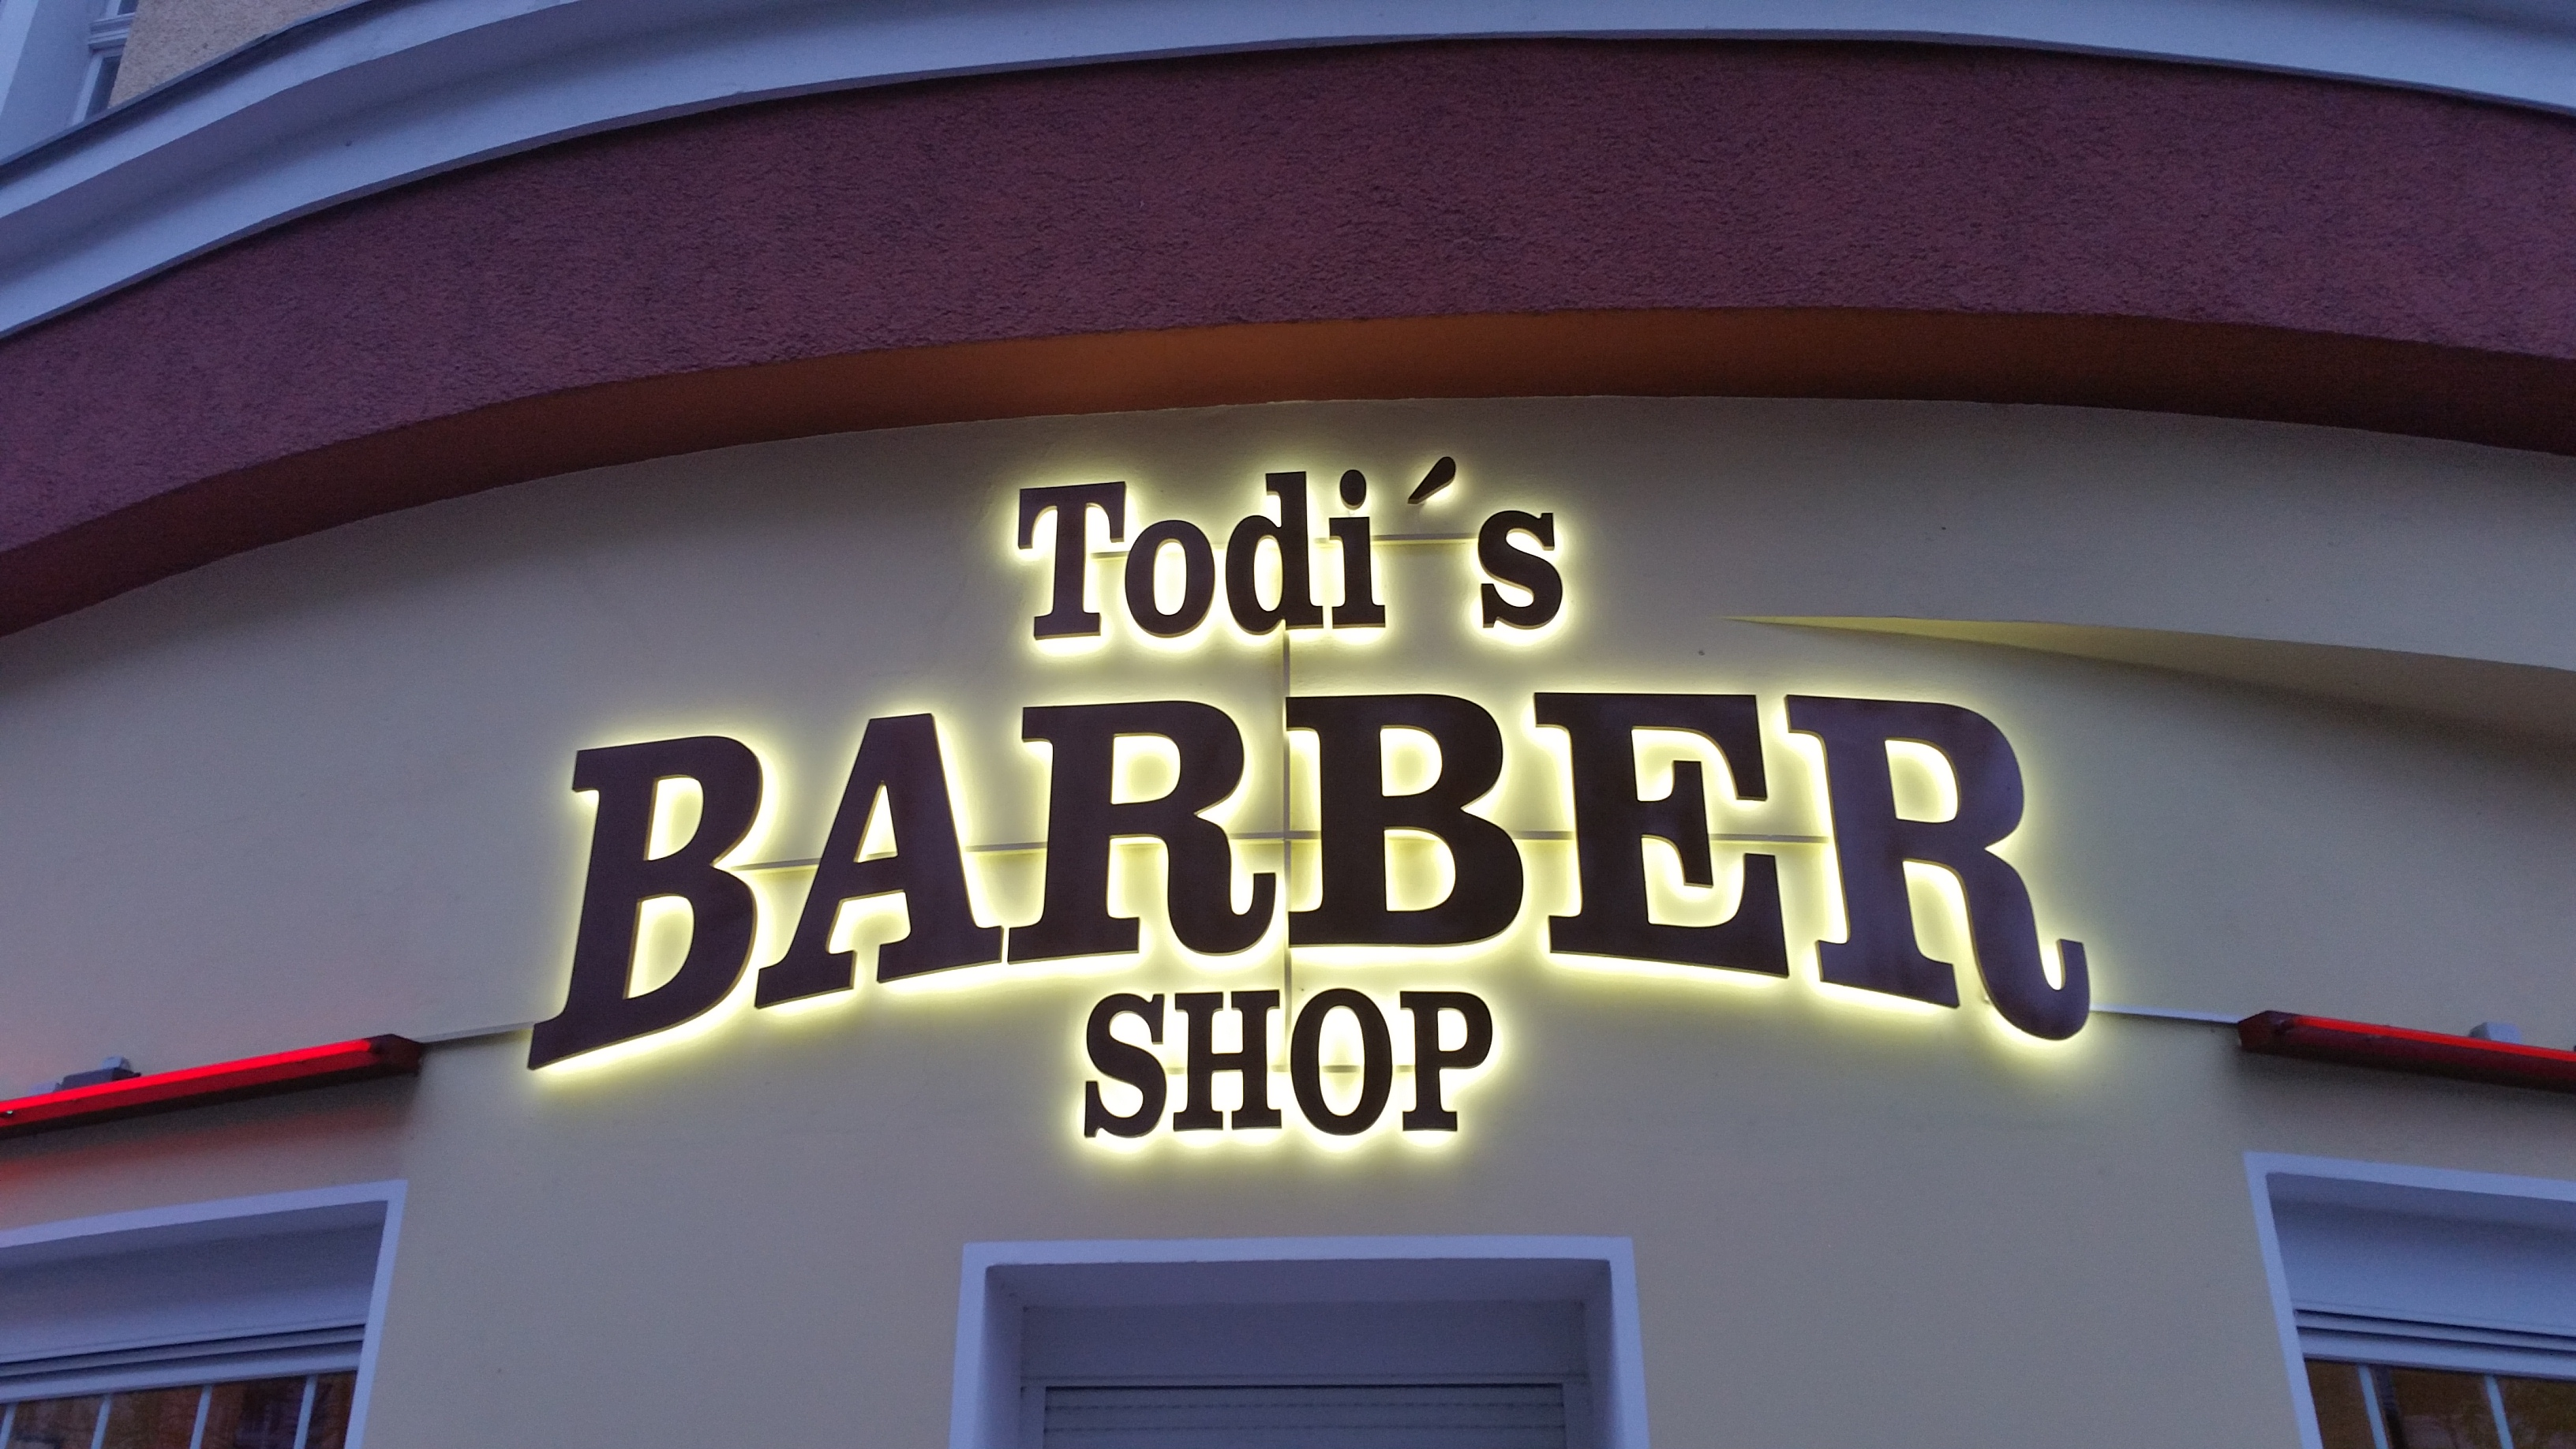 Todi's Barbershop entrance